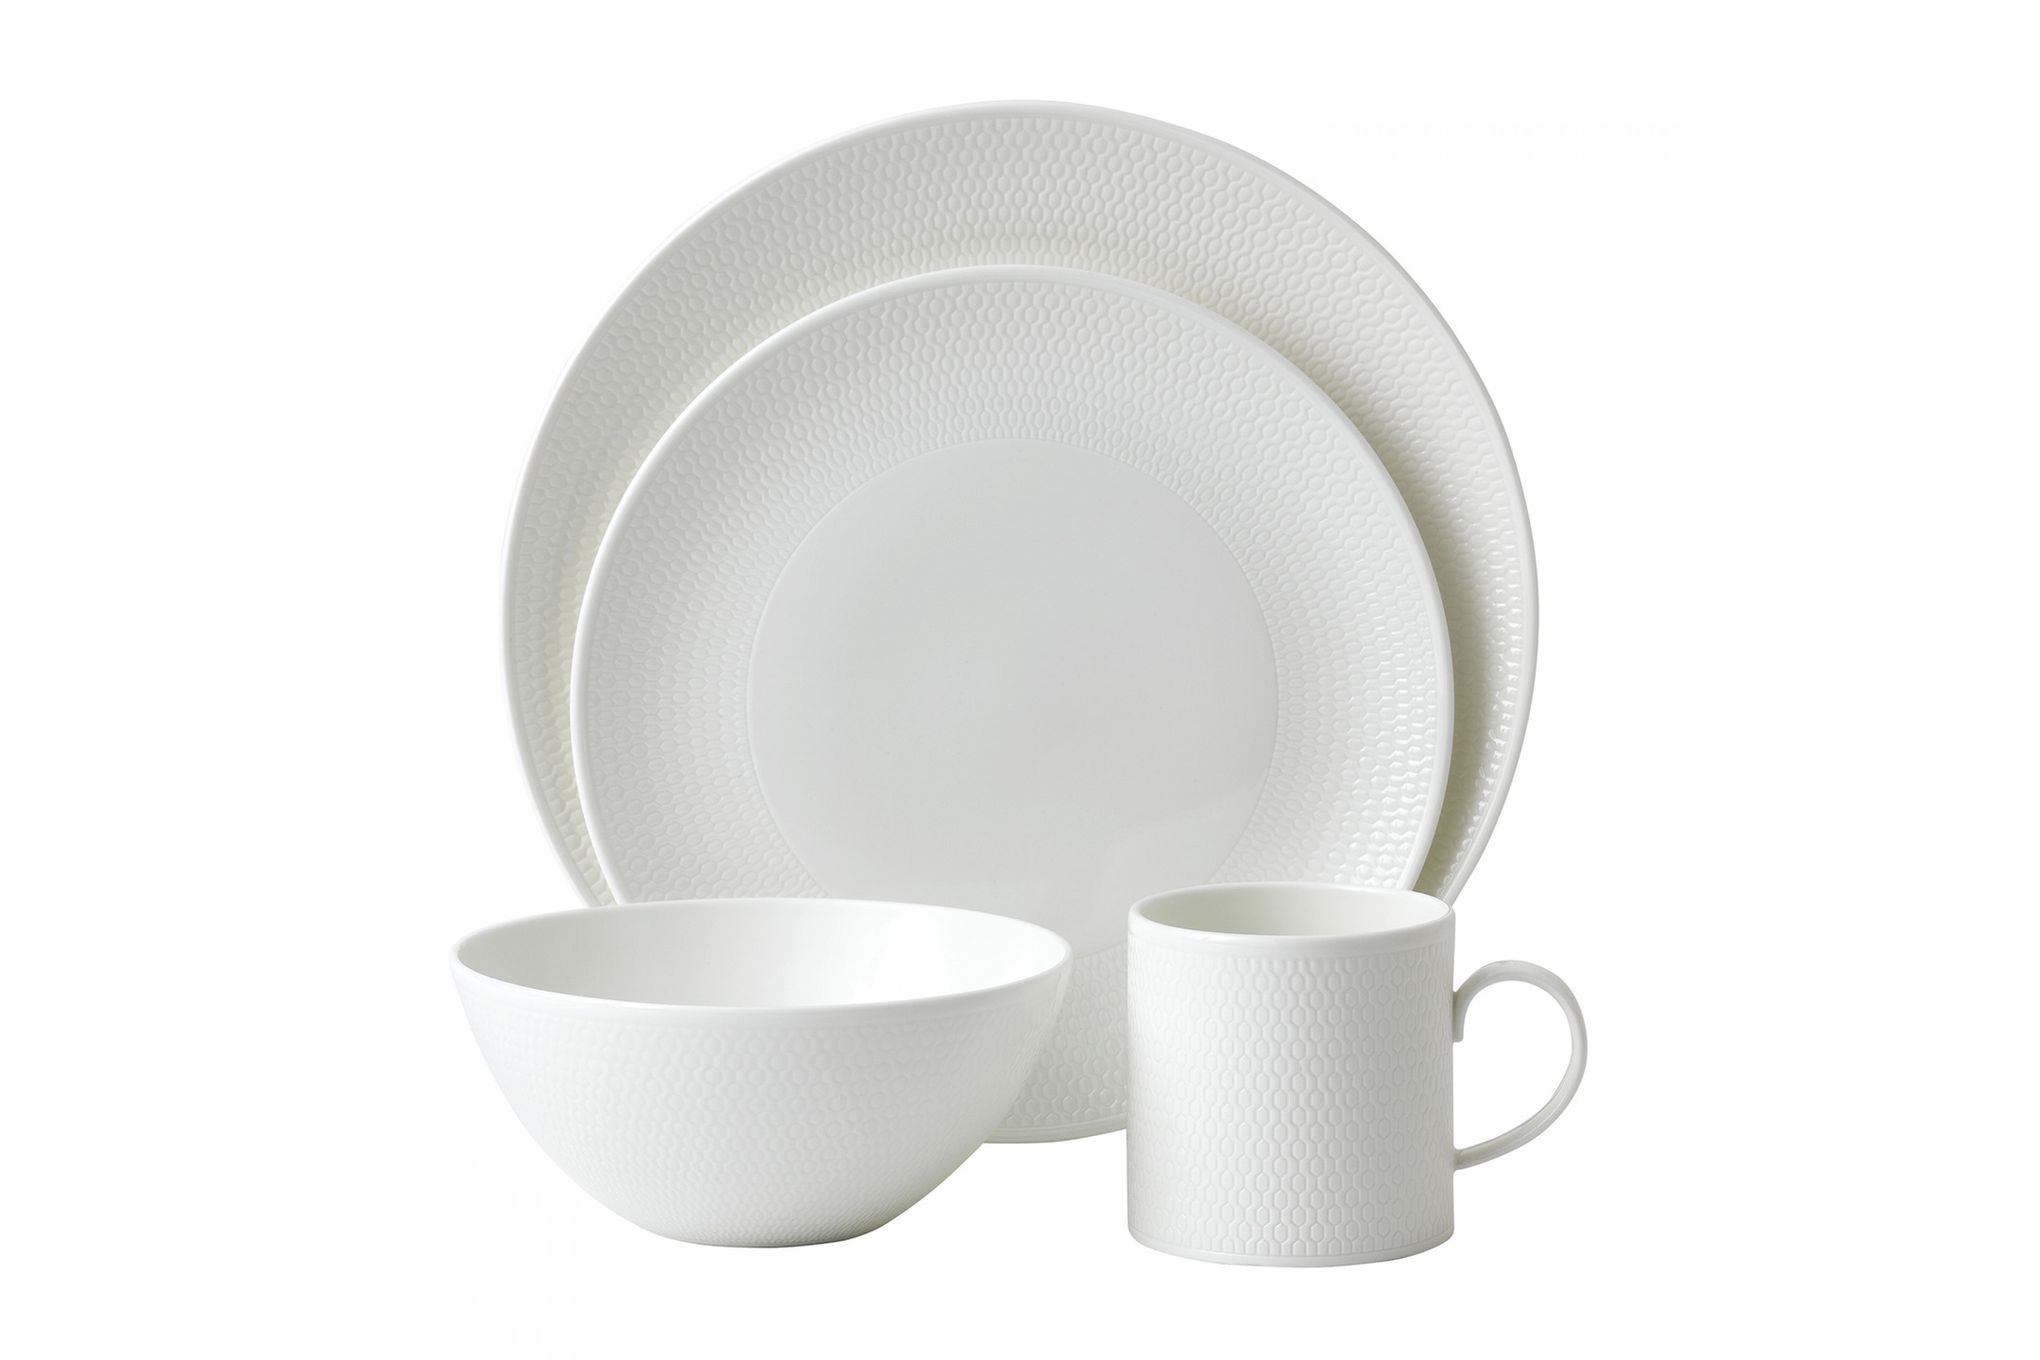 Wedgwood Gio 16 Piece Set thumb 1